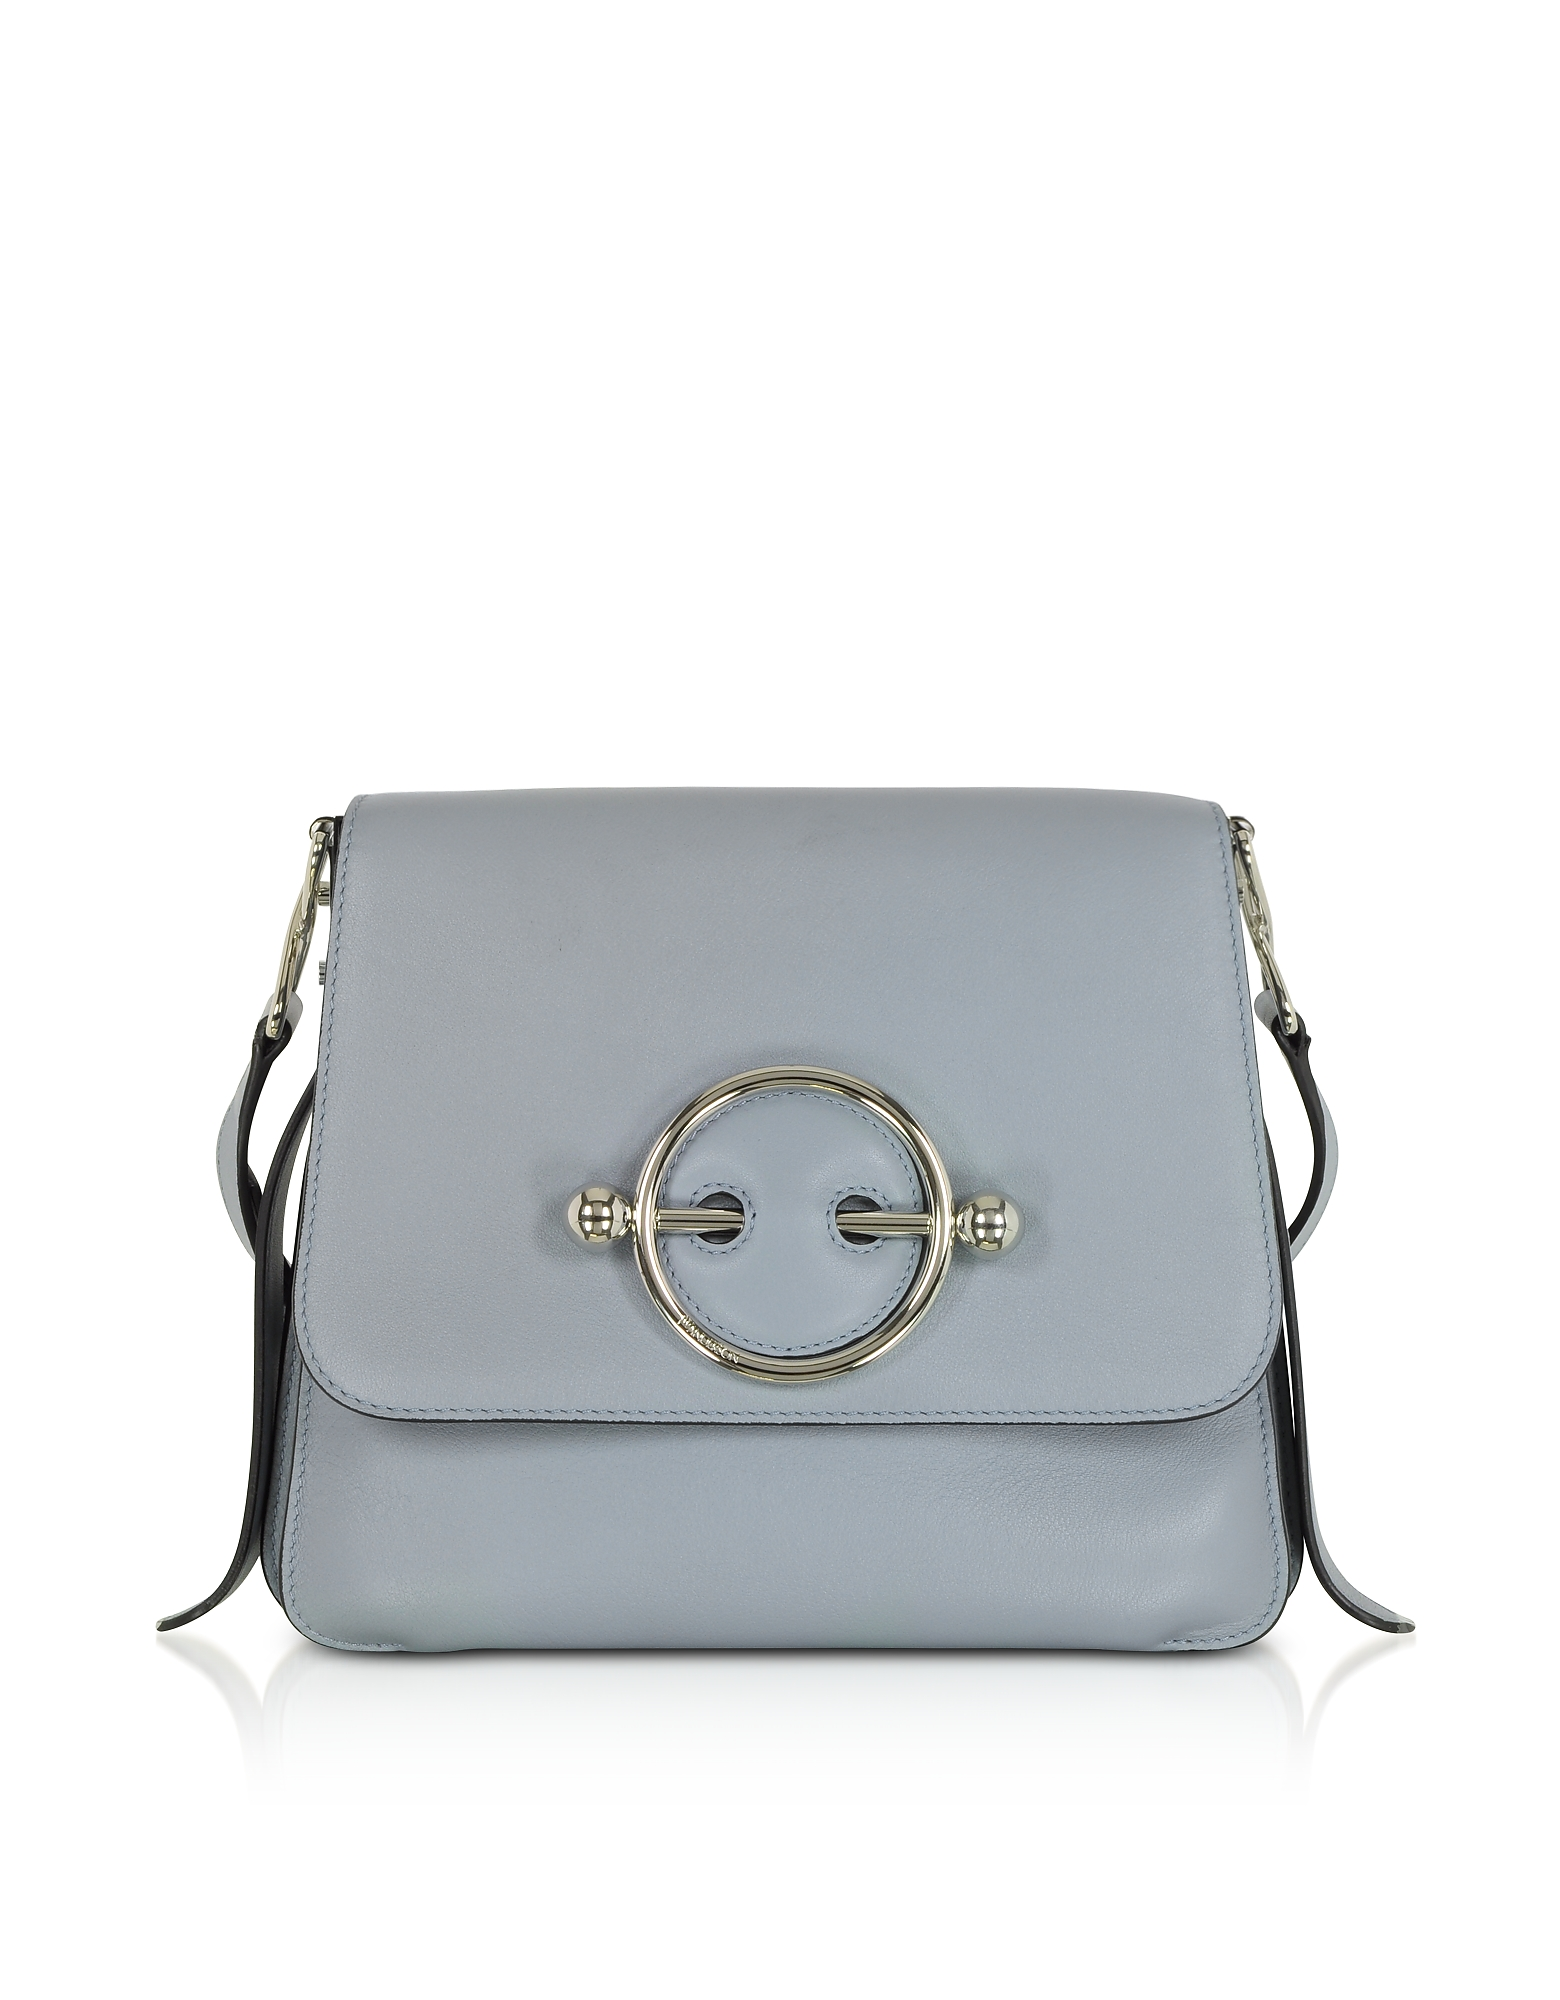 JW Anderson Handbags, Ice Blue Leather Disc Bag